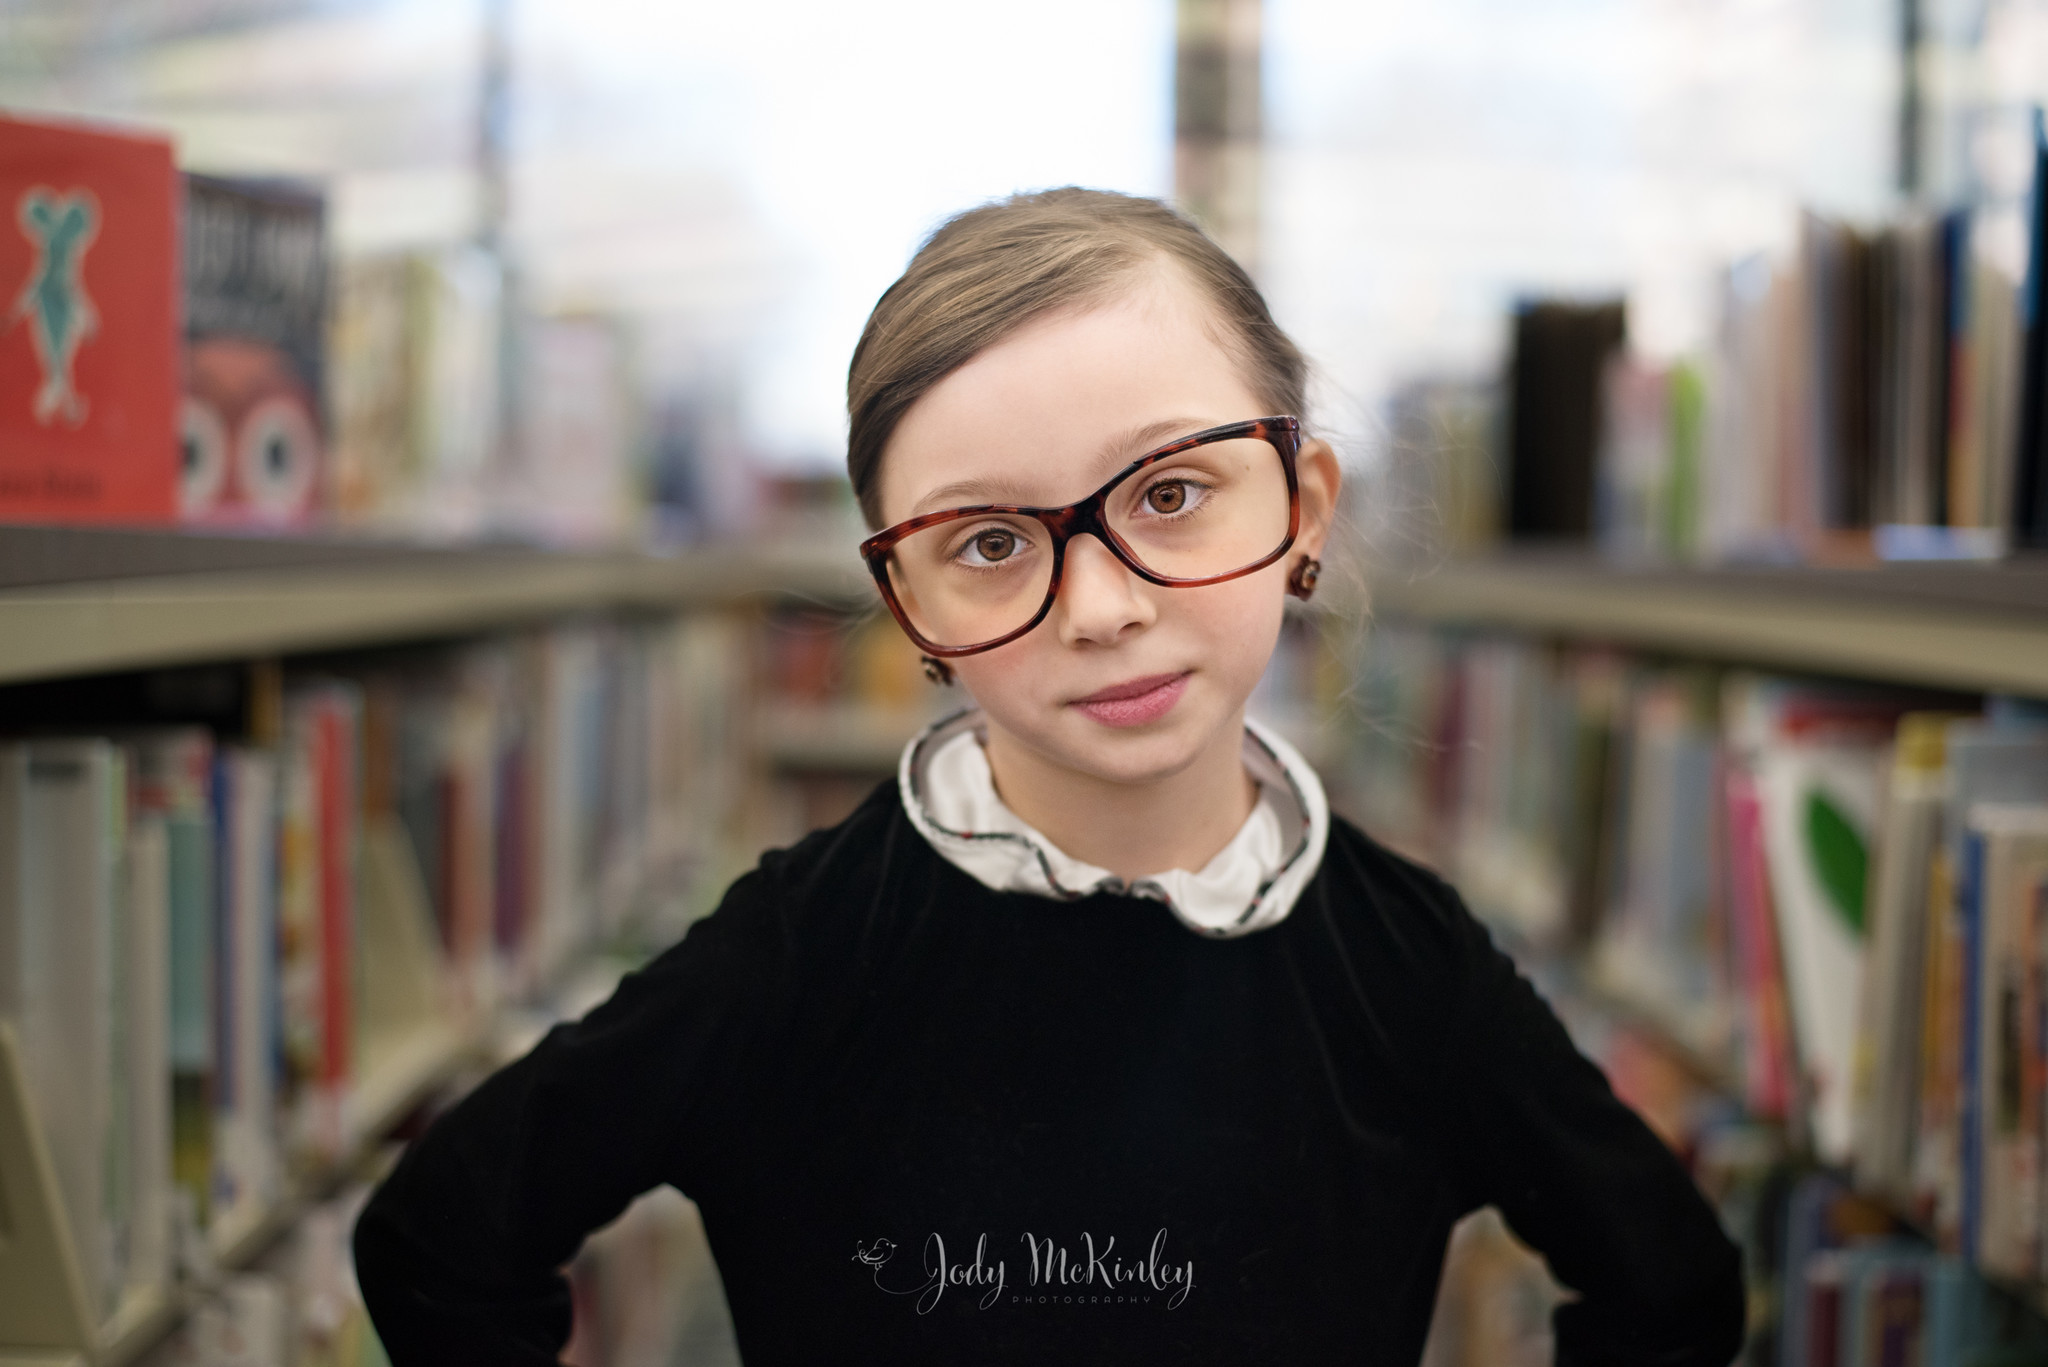 columbia girl's ruth bader ginsburg costume goes viral, draws praise